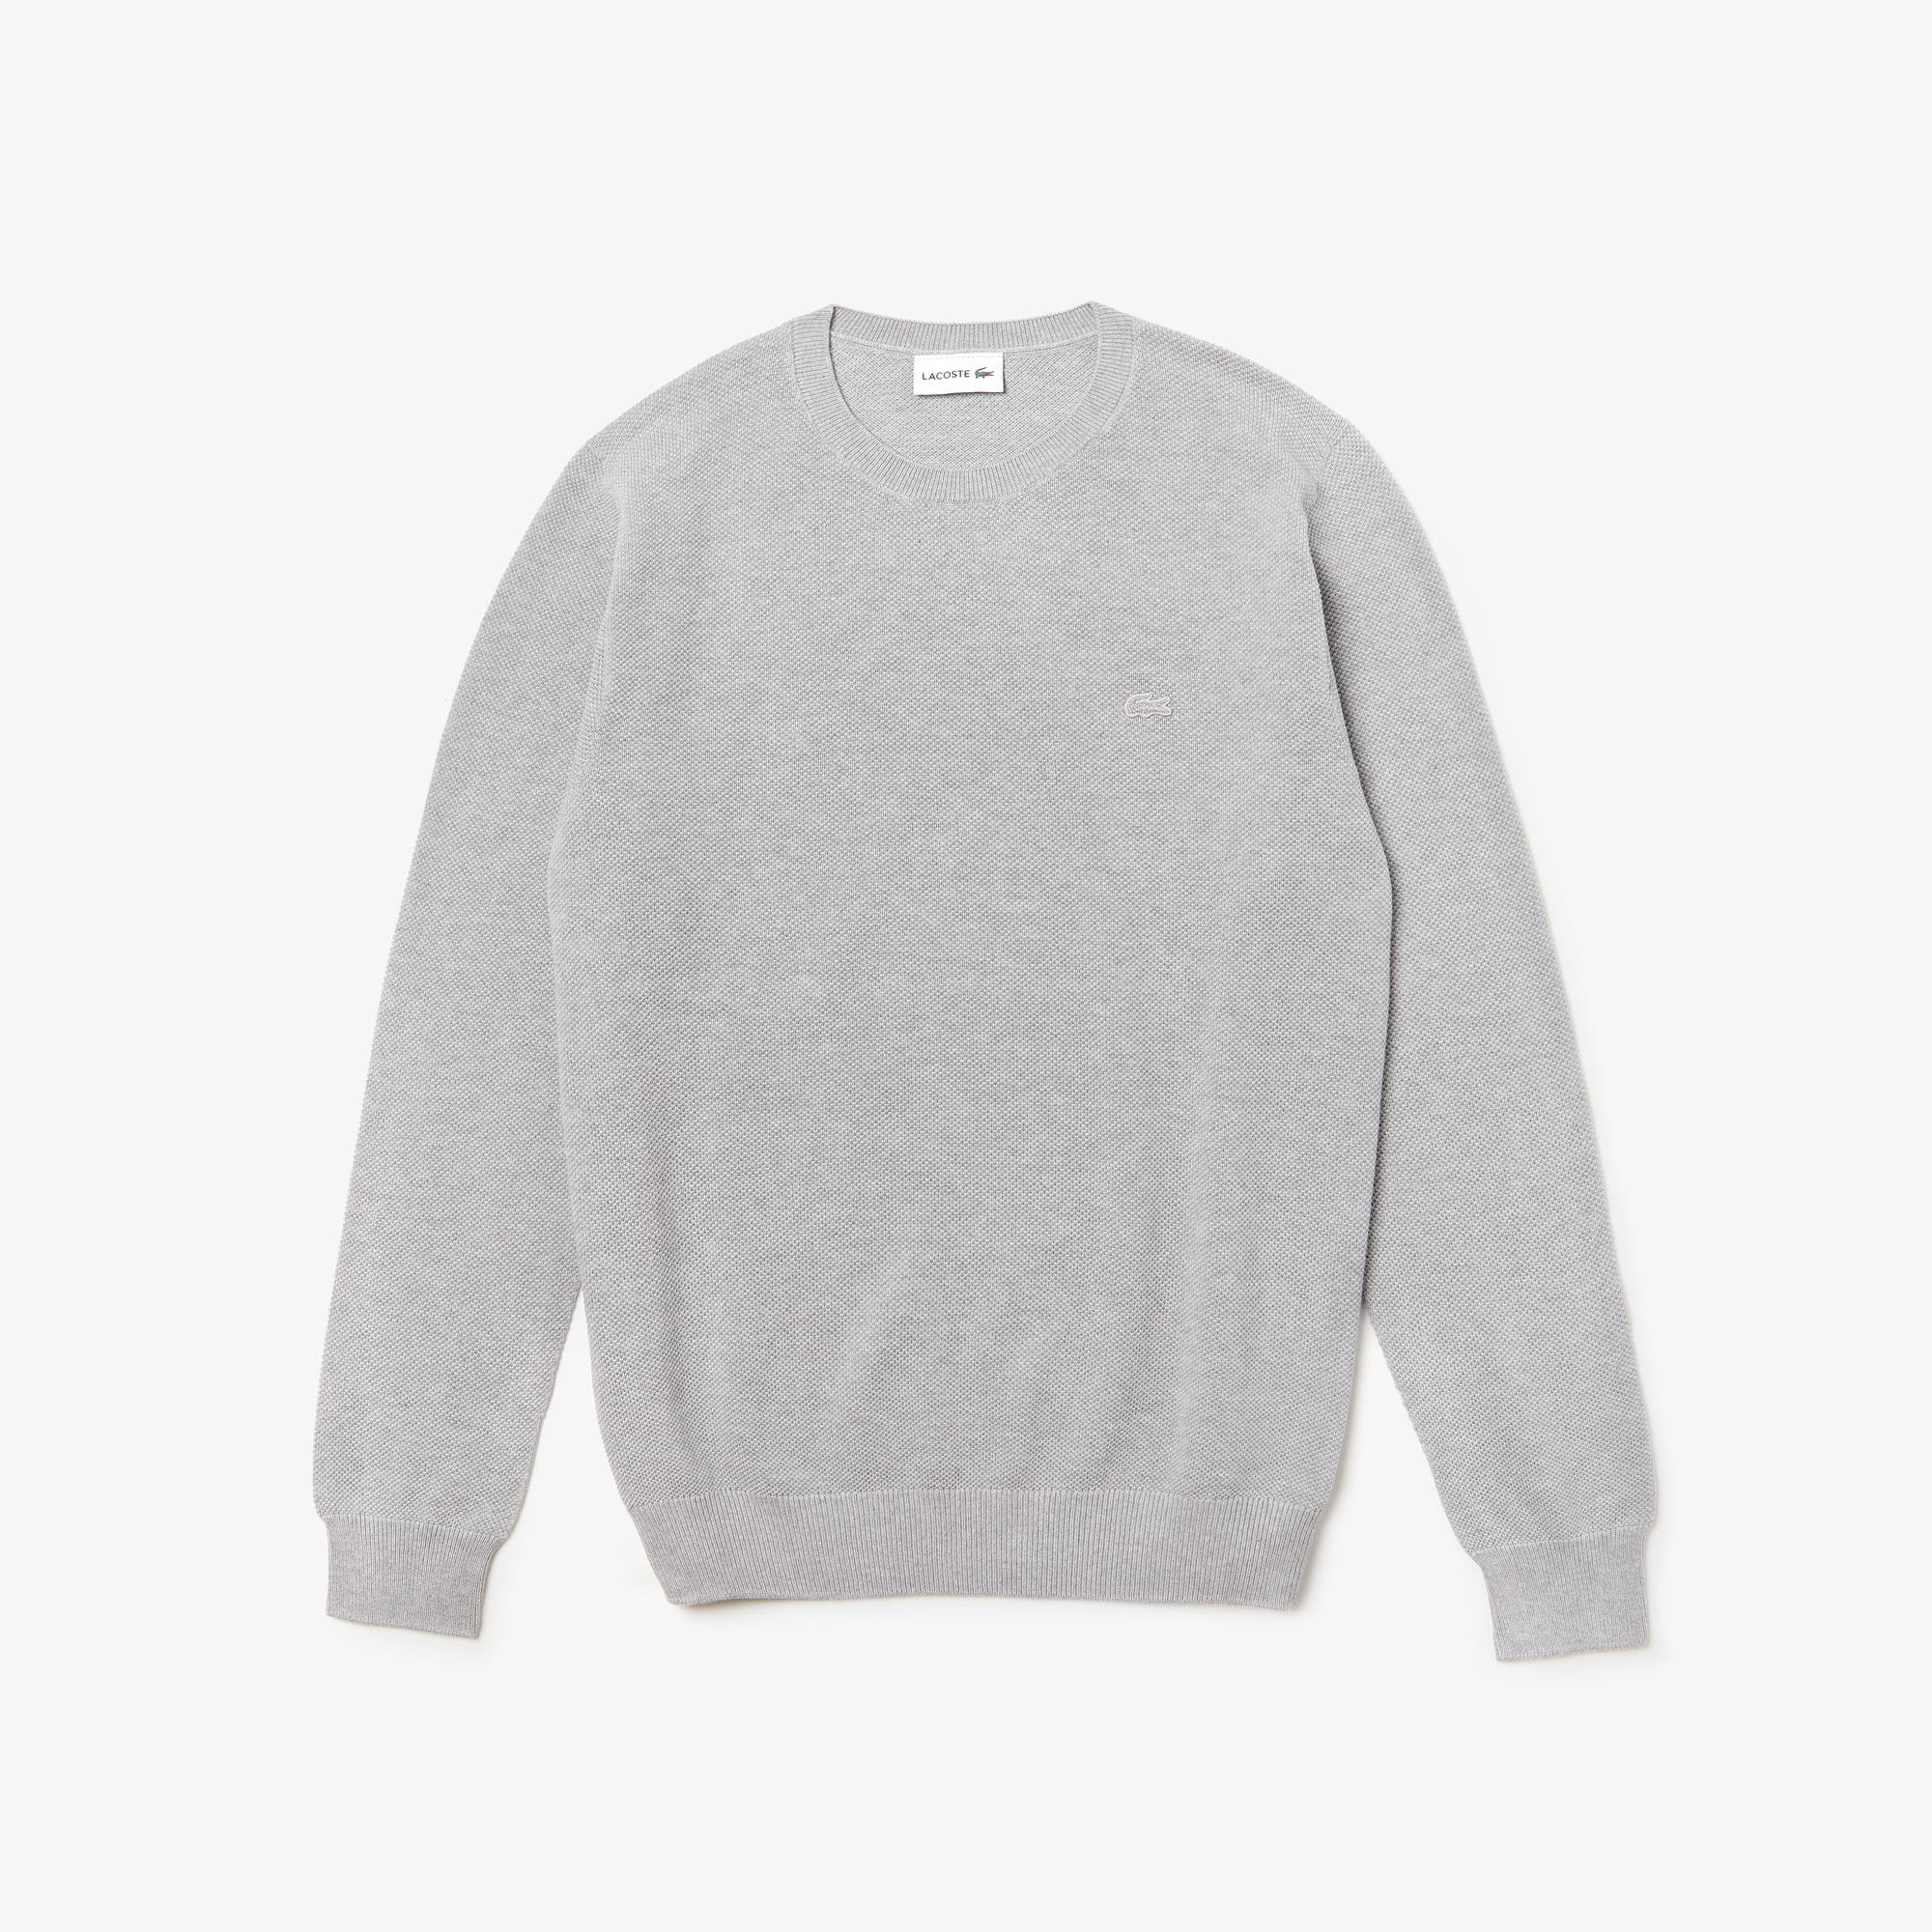 Lacoste Men's Crew Neck Cotton Piqué Sweater